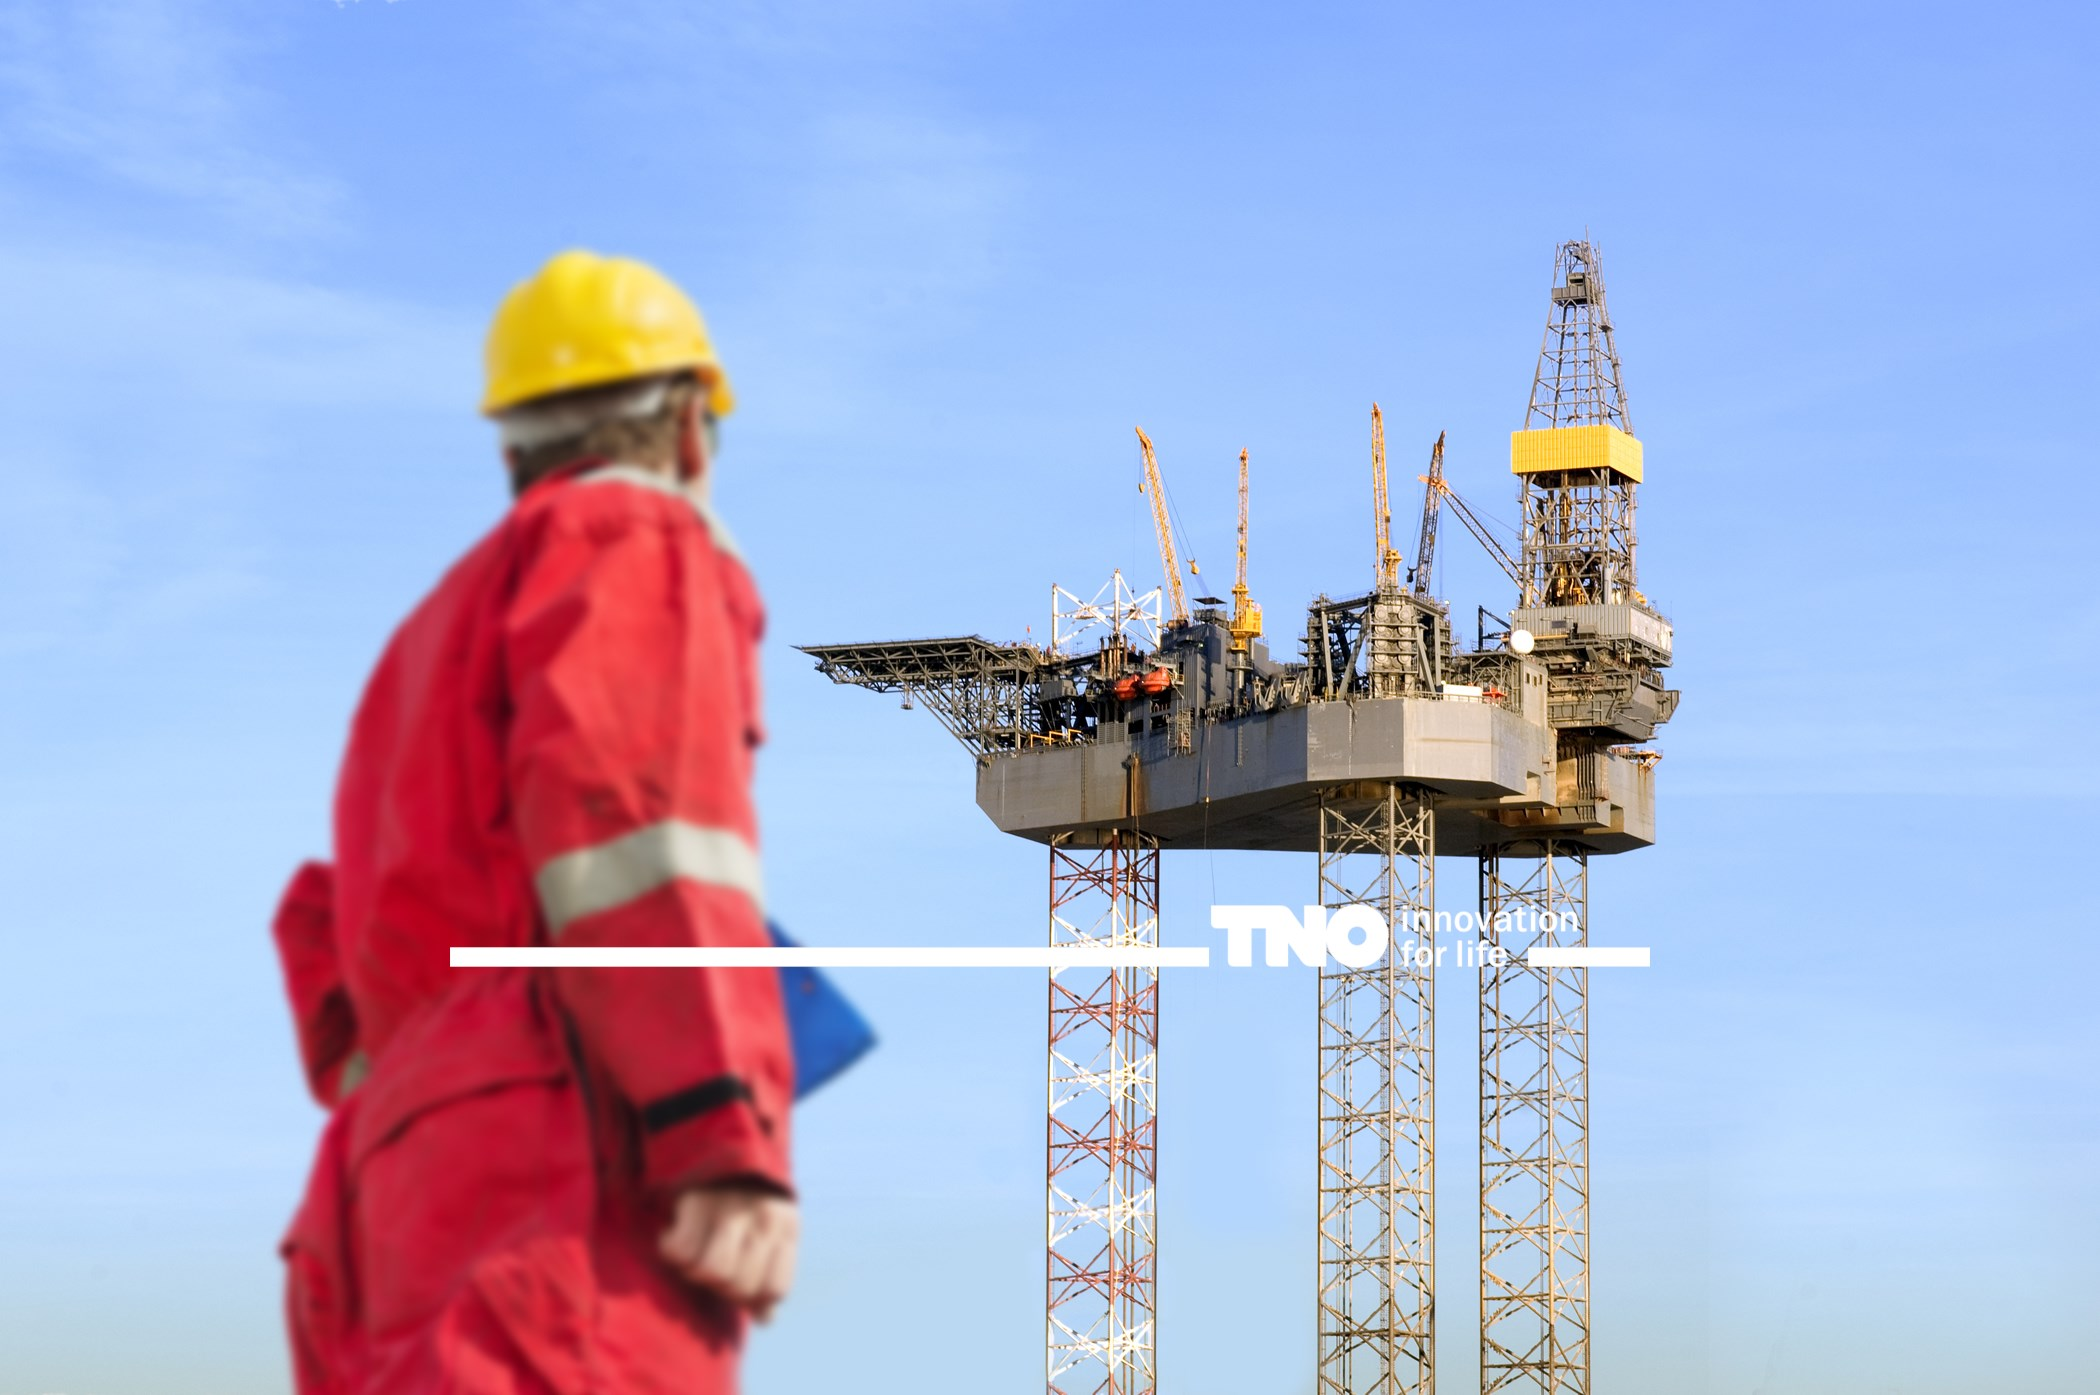 Maritime & Offshore: sustainable use of our oceans   TNO